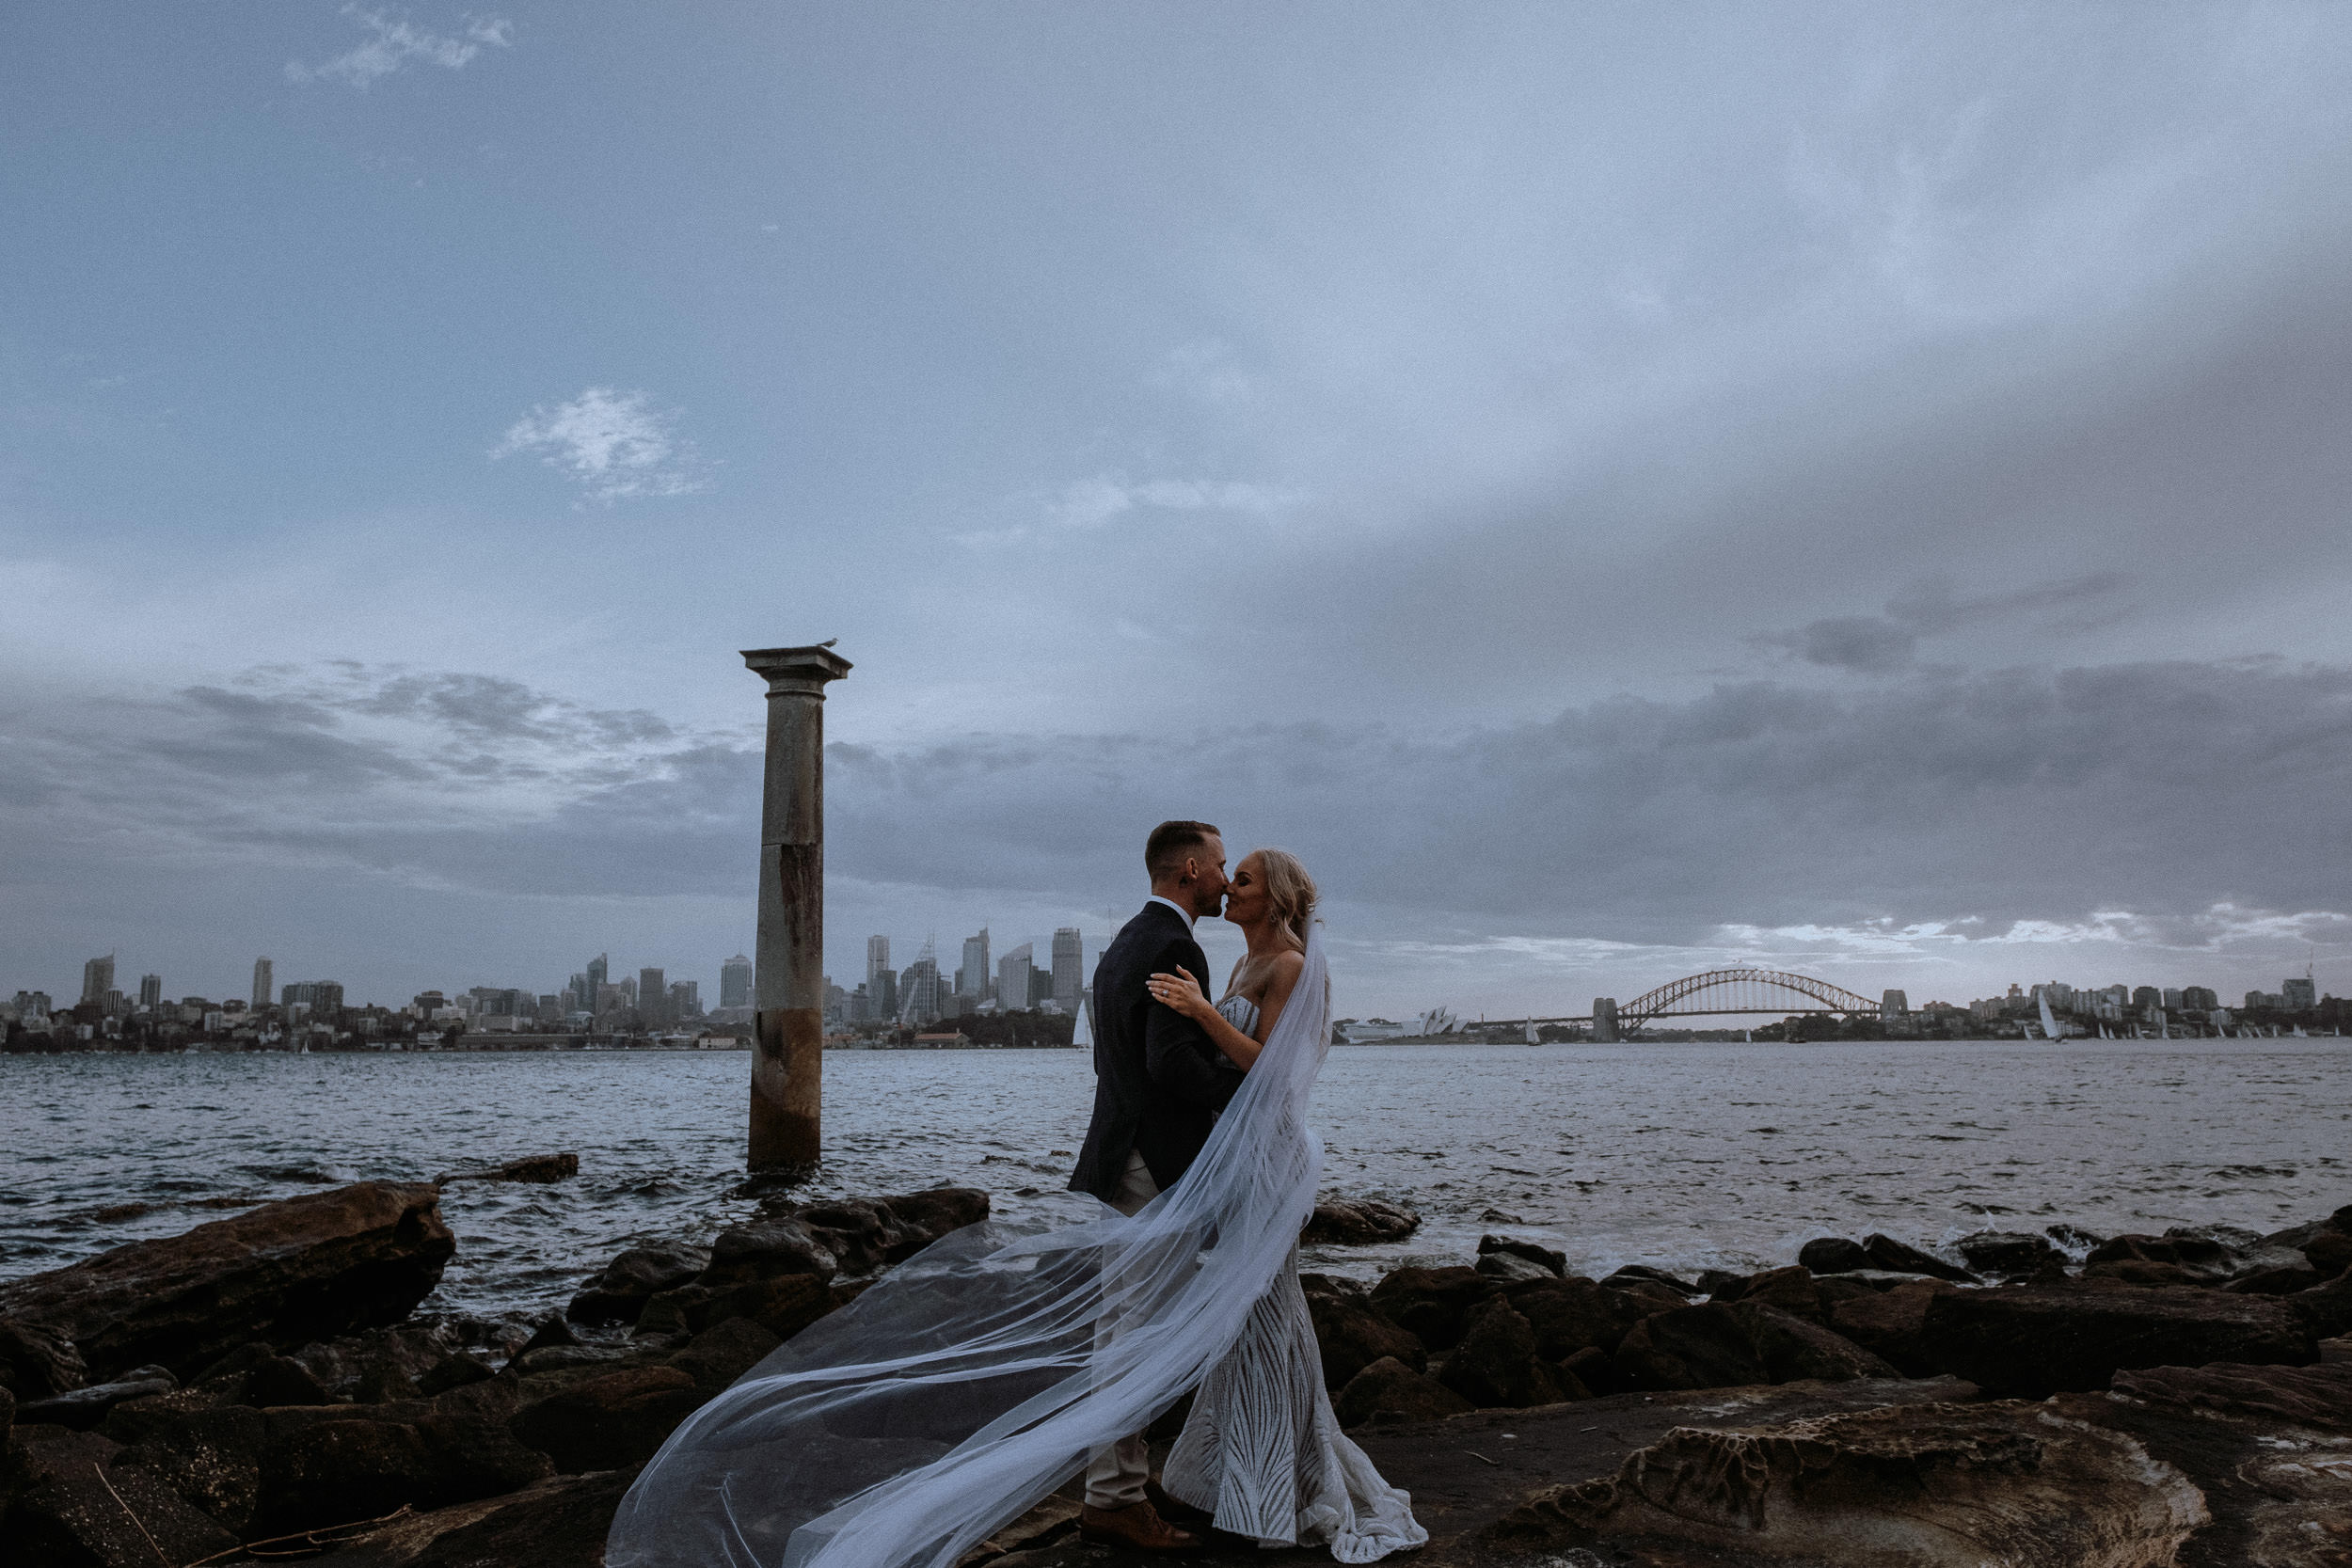 A powerful frame of a newly married bride and groom at Bradley's Head, on Sydney Harbour with Sydney City in the background, at sunset